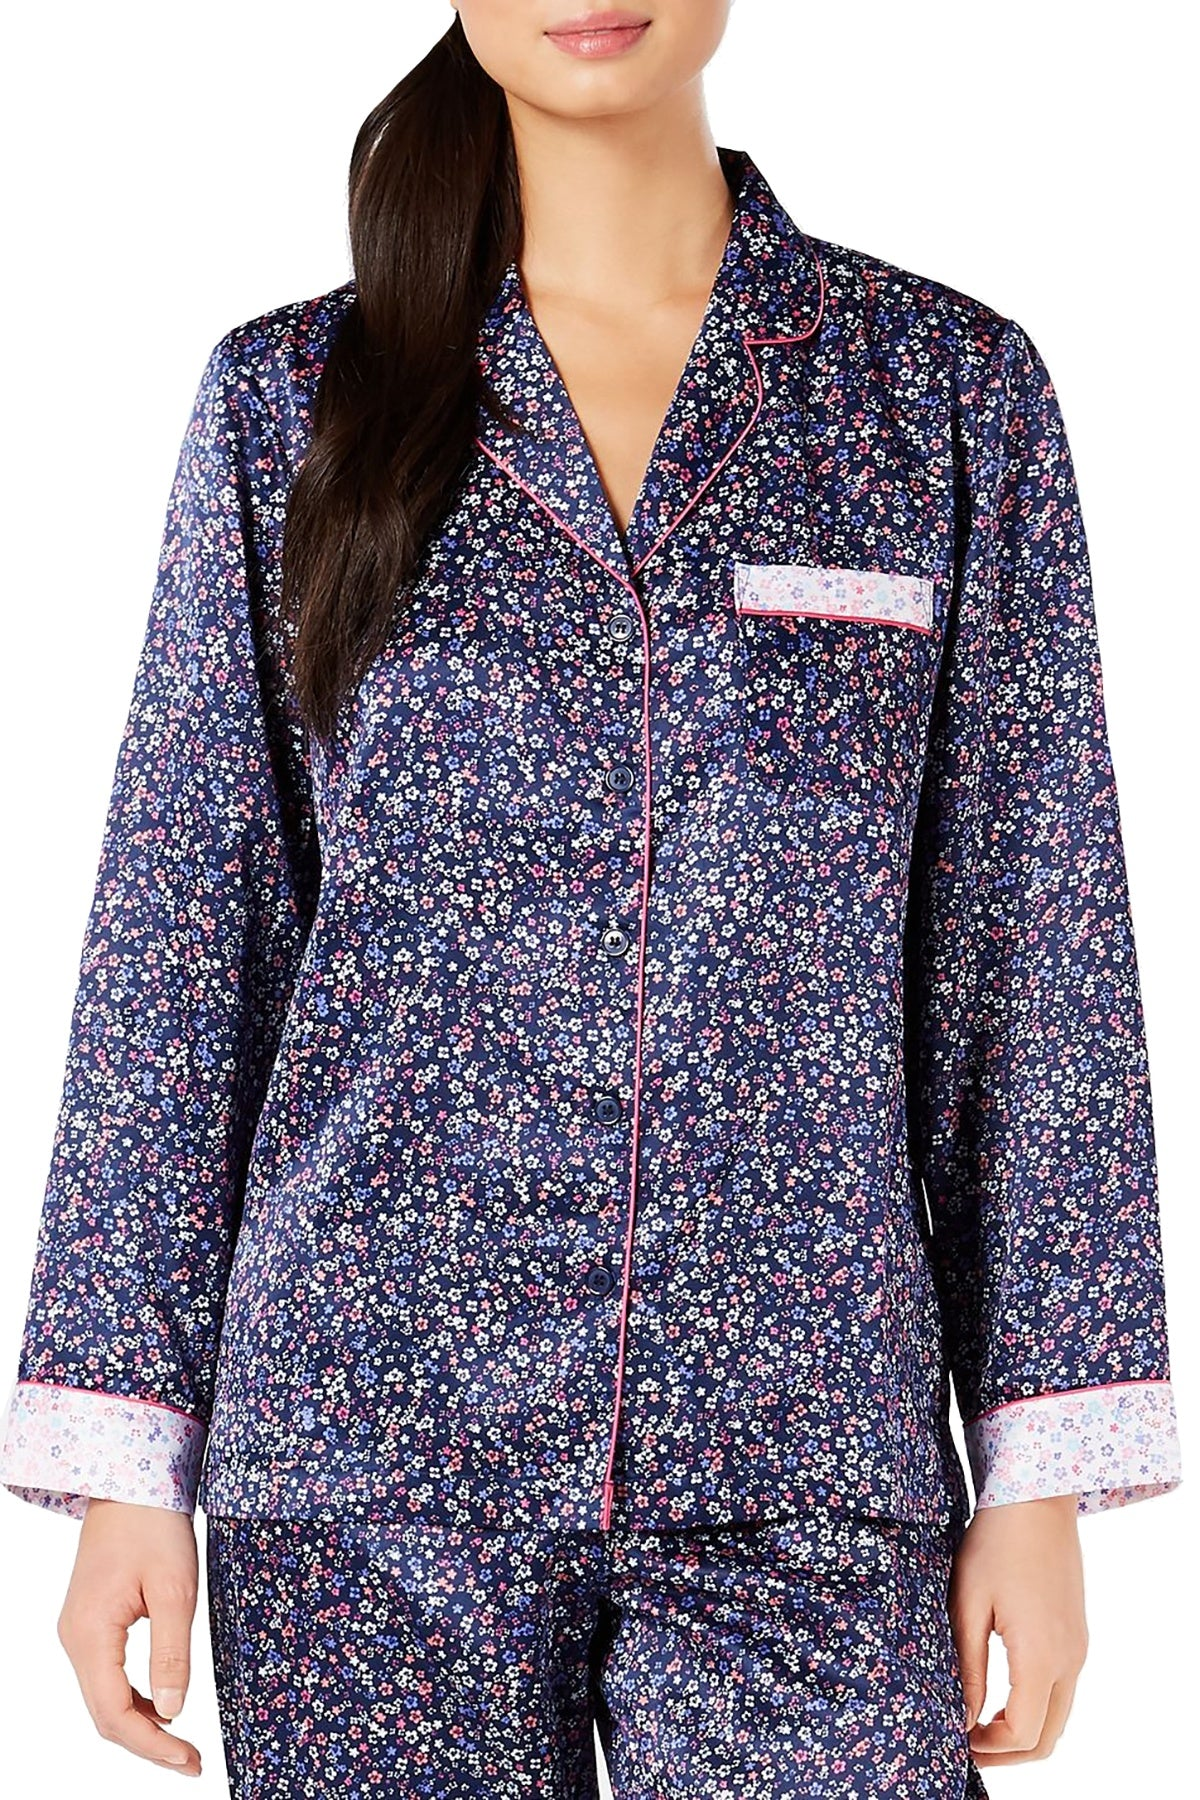 Charter Club Notch Collar Pajama Top in Mini Floral Navy